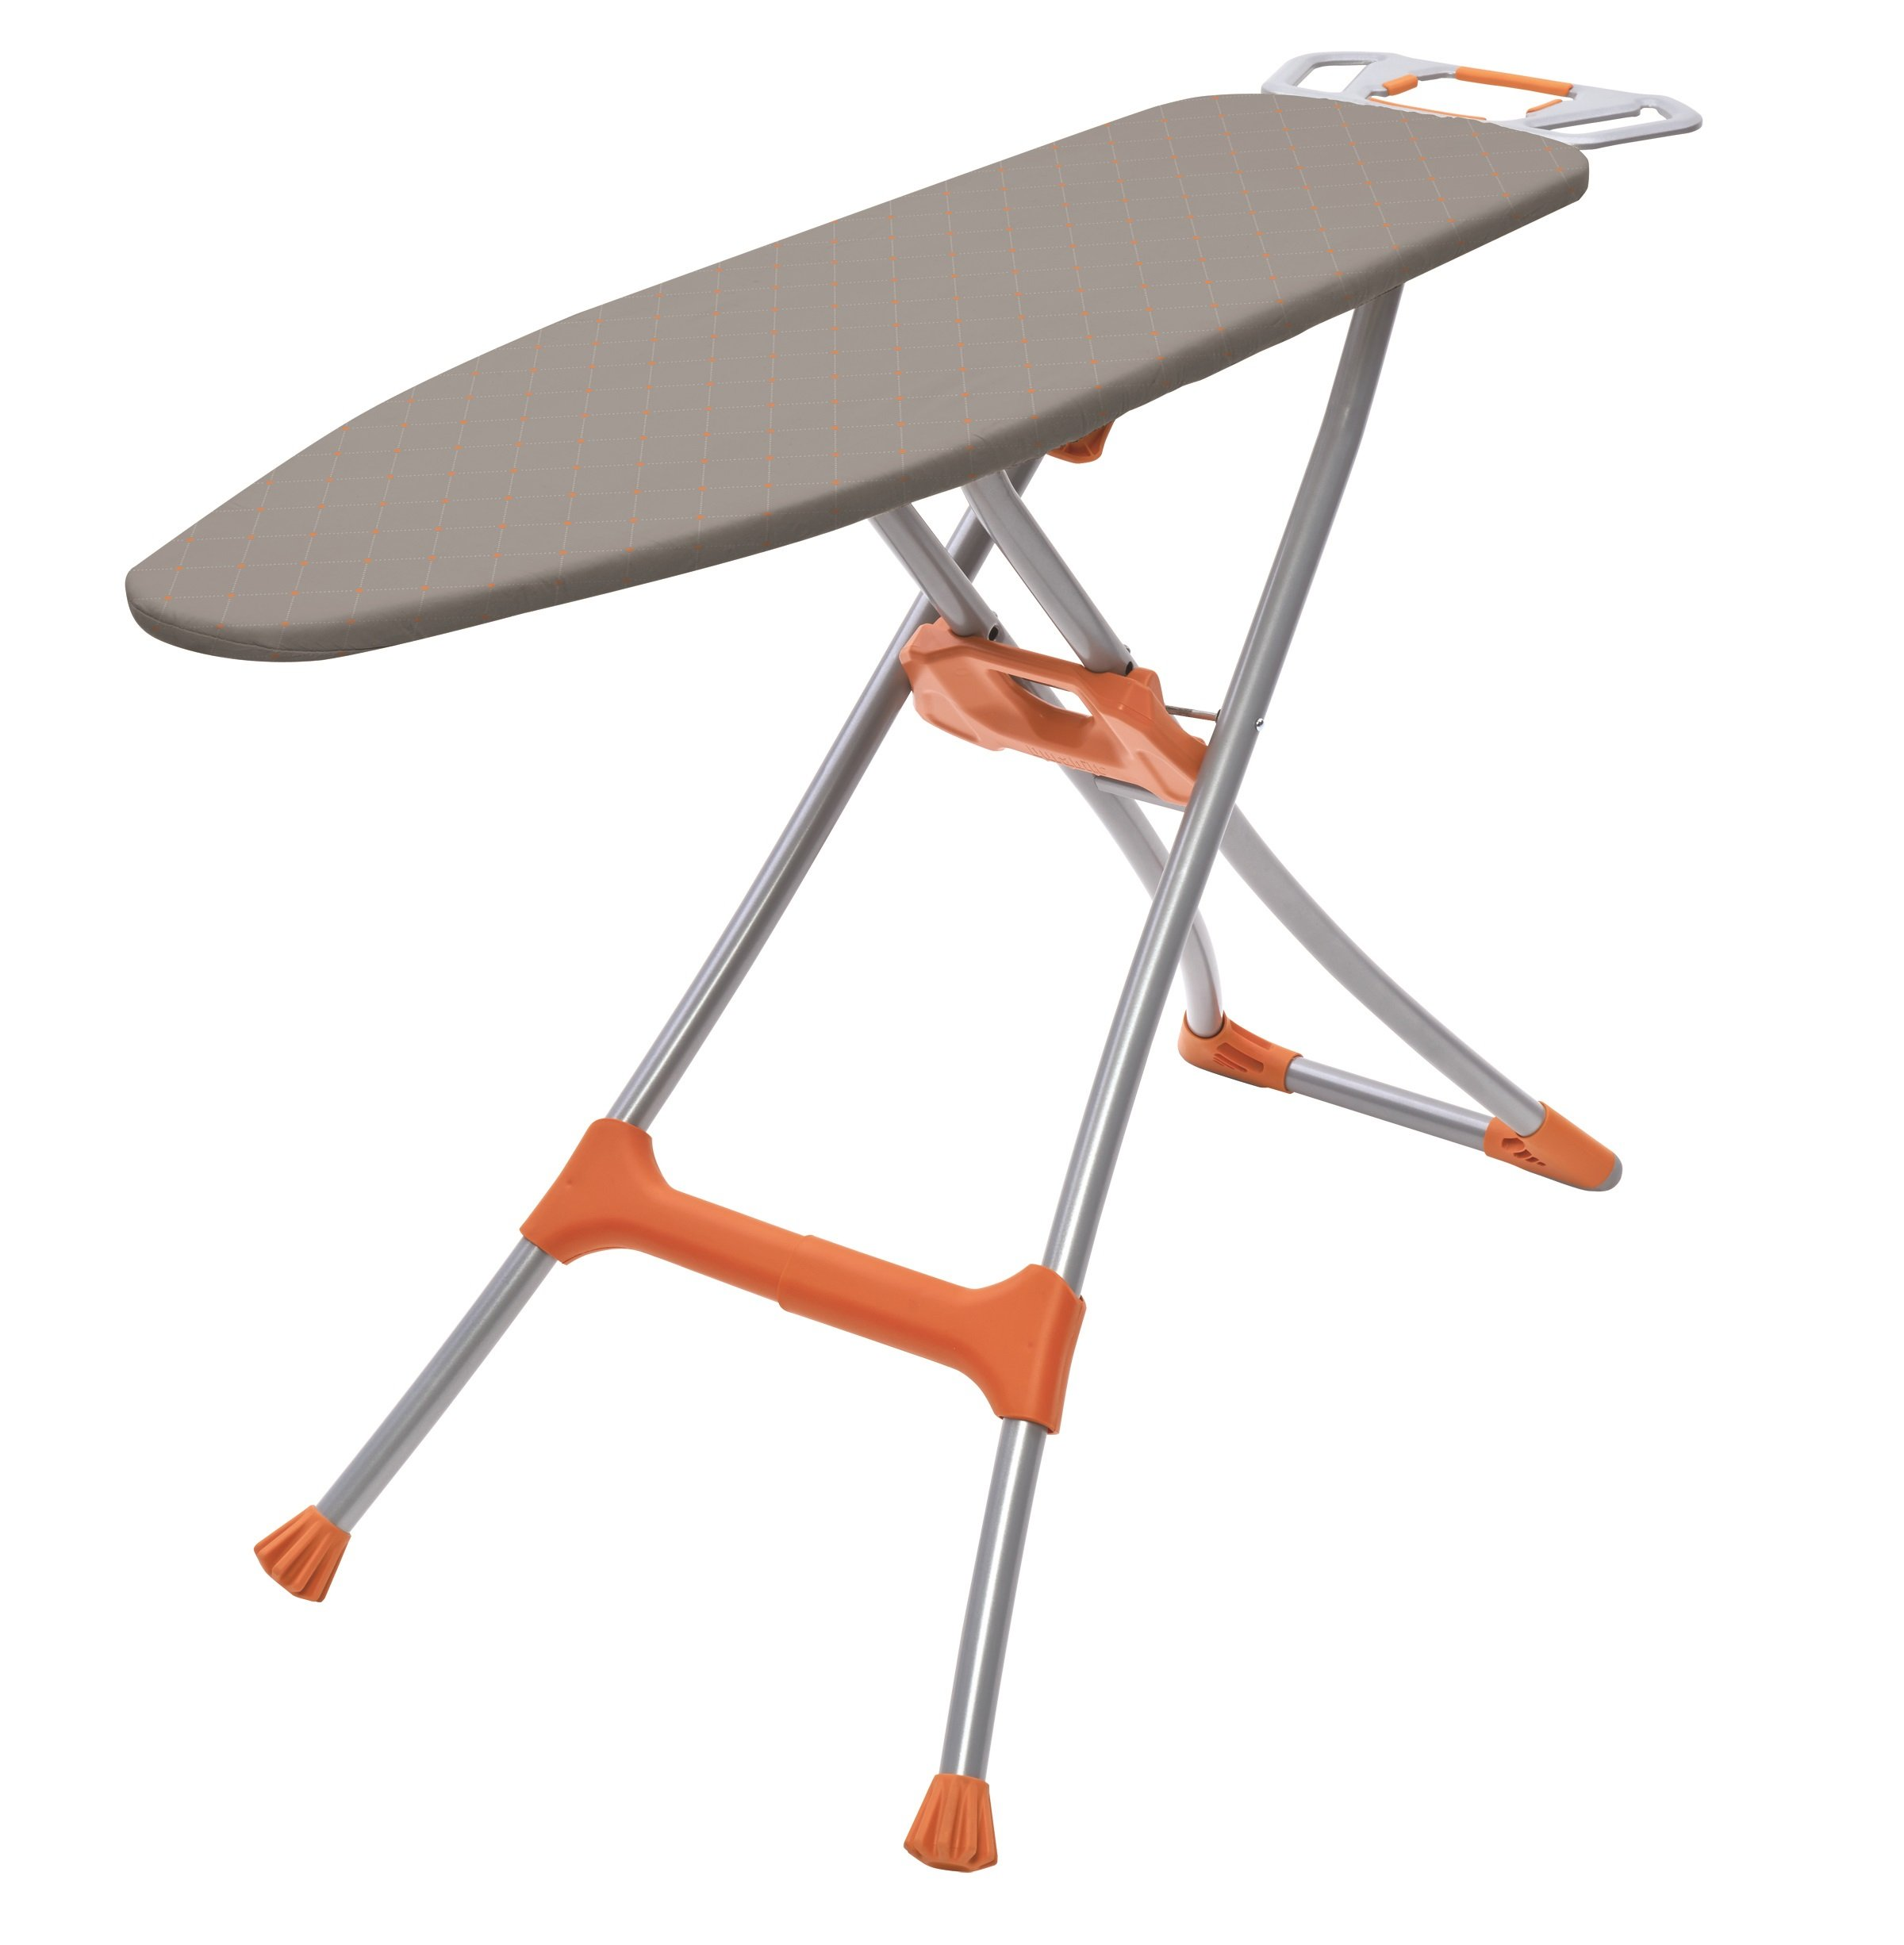 HOMZ Durabilt DX1500 Premium Steel Top Ironing Board with Wide Leg Stability, Adjustable up to 39.5''